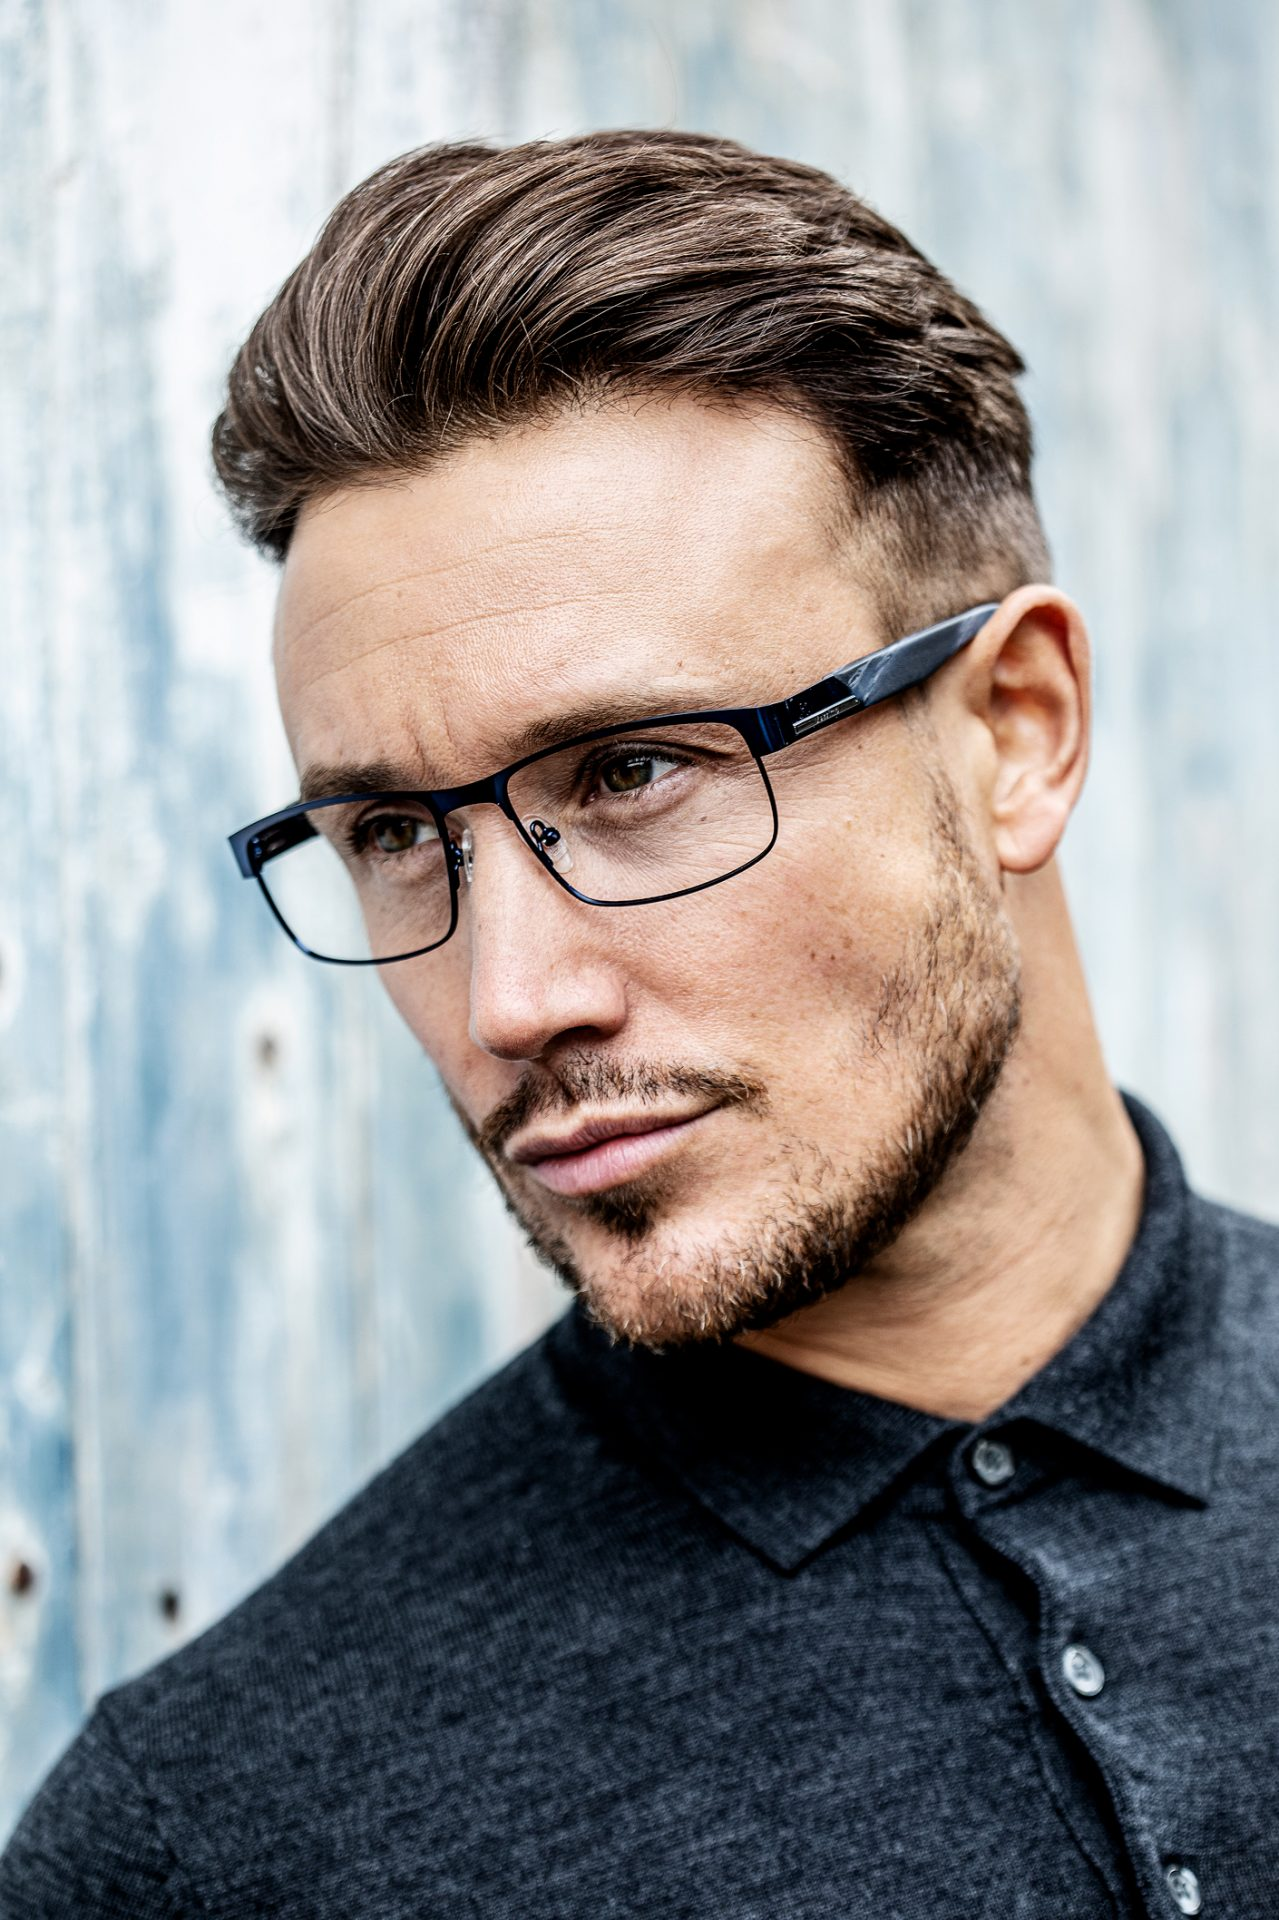 mens-fashion-eyewear-photography